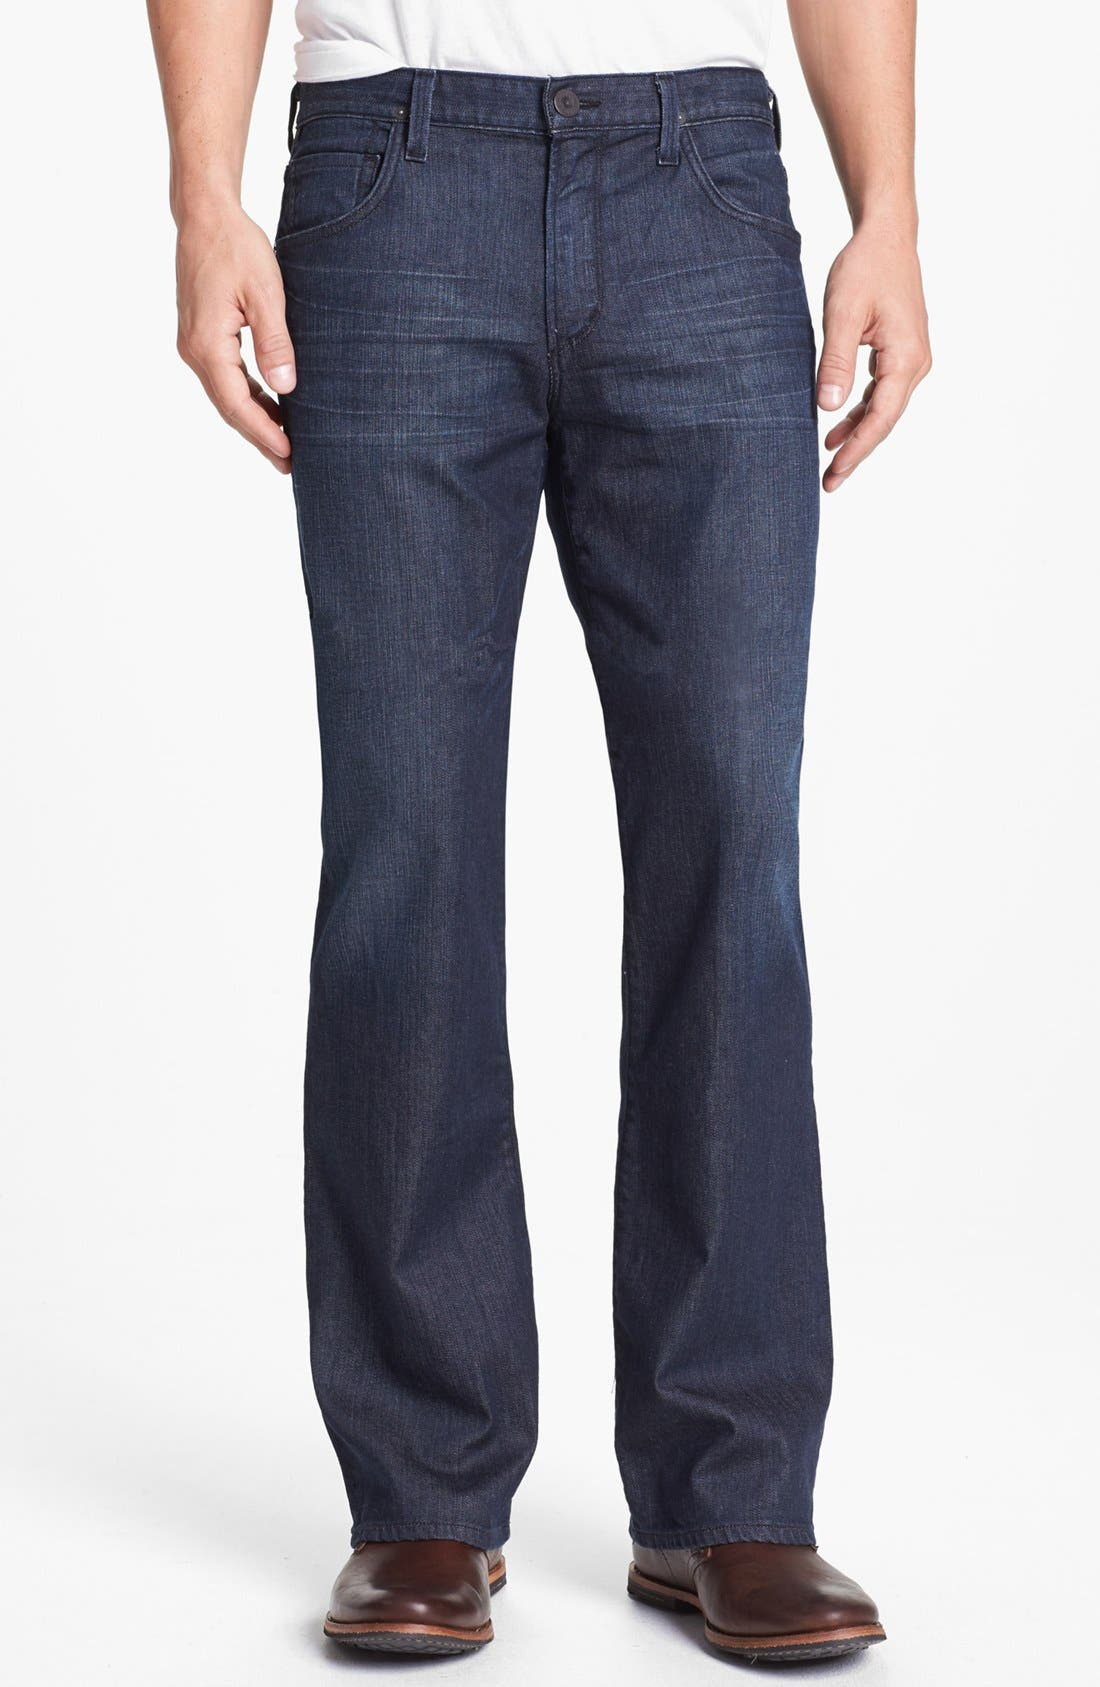 Alternate Image 1 Selected - Citizens of Humanity Bootcut Jeans (Alvin)